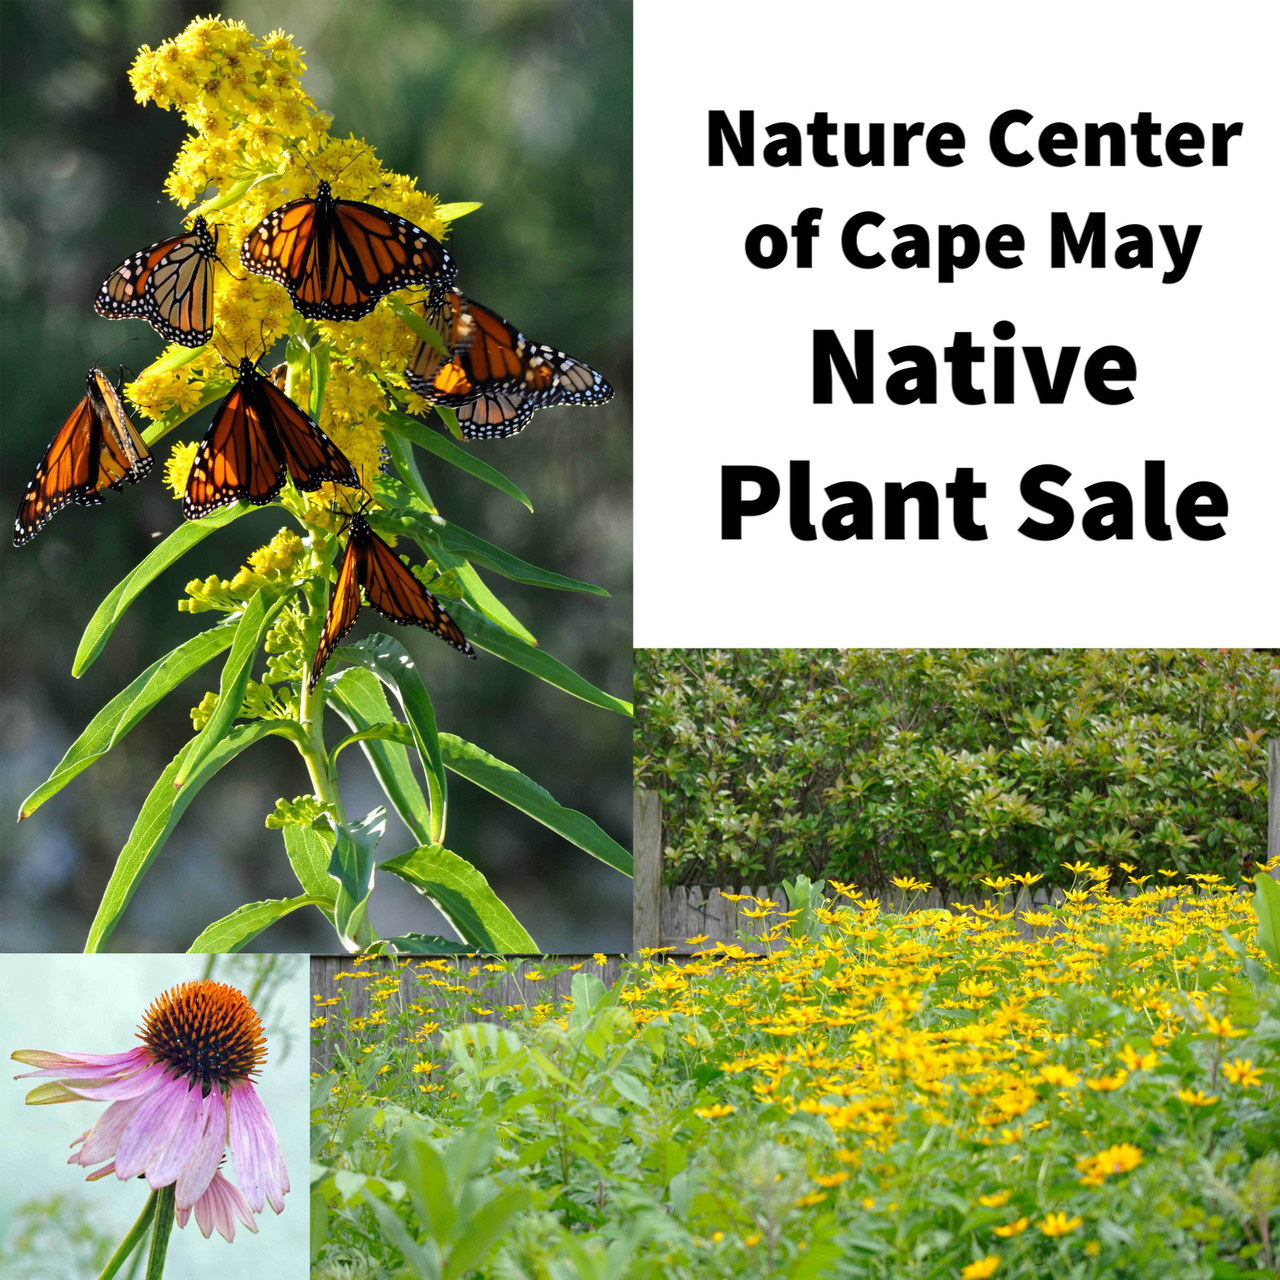 Nature Center of Cape May